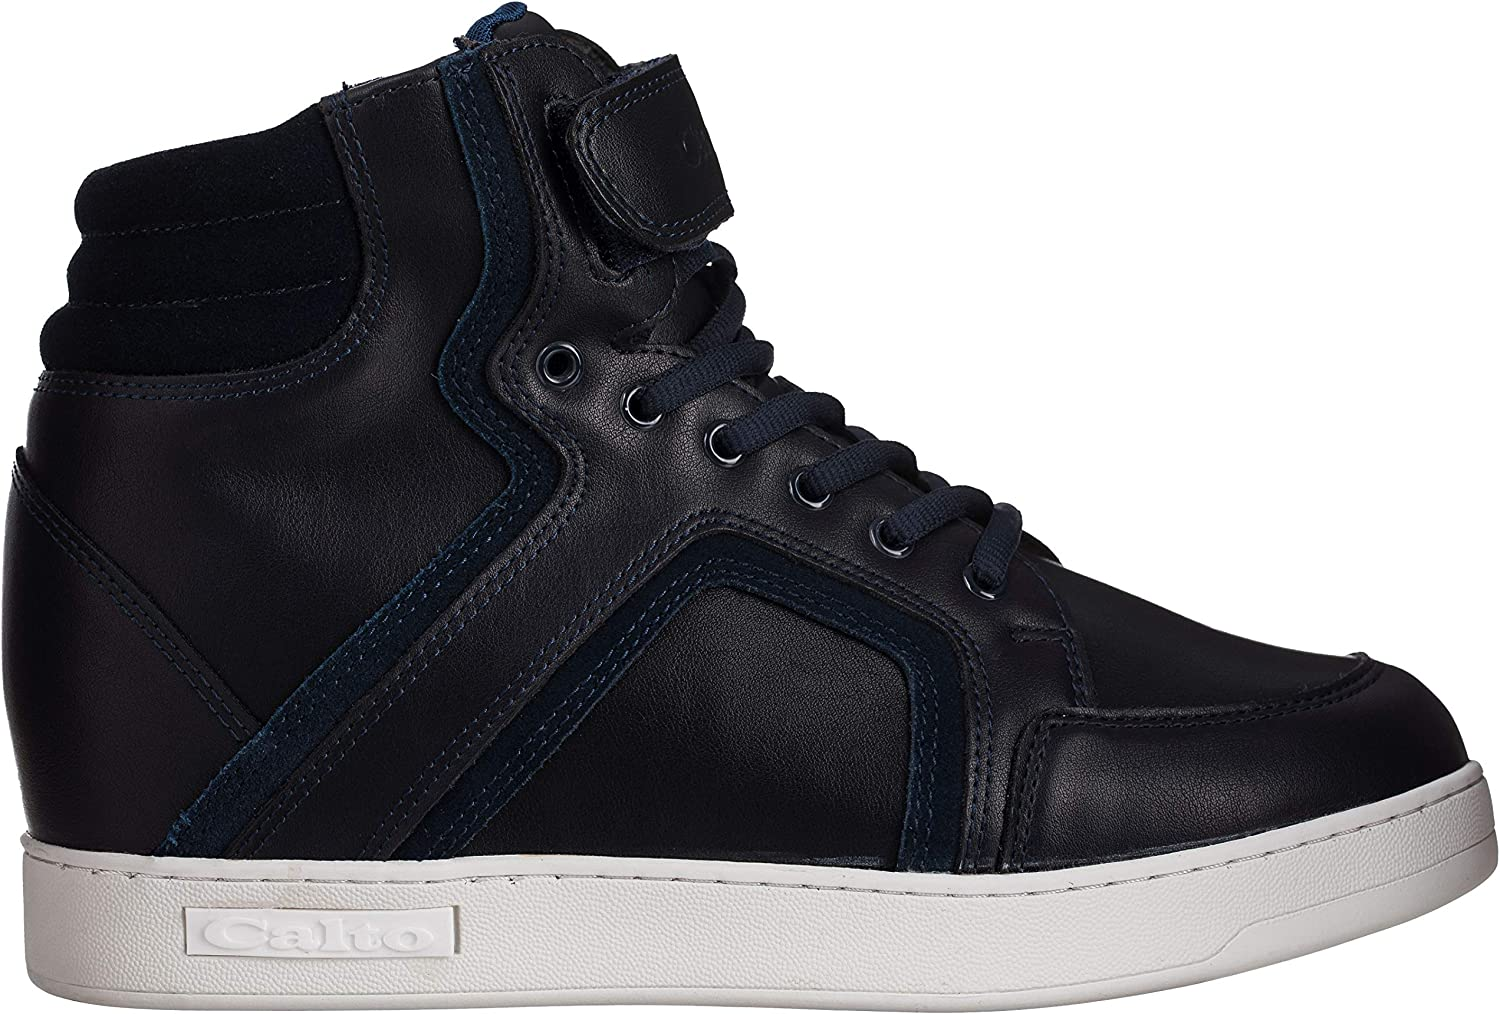 Suede Lace-up High-top Fashion Sneakers CALTO Mens Invisible Height Increasing Elevator Shoes 2.8 Inches Taller